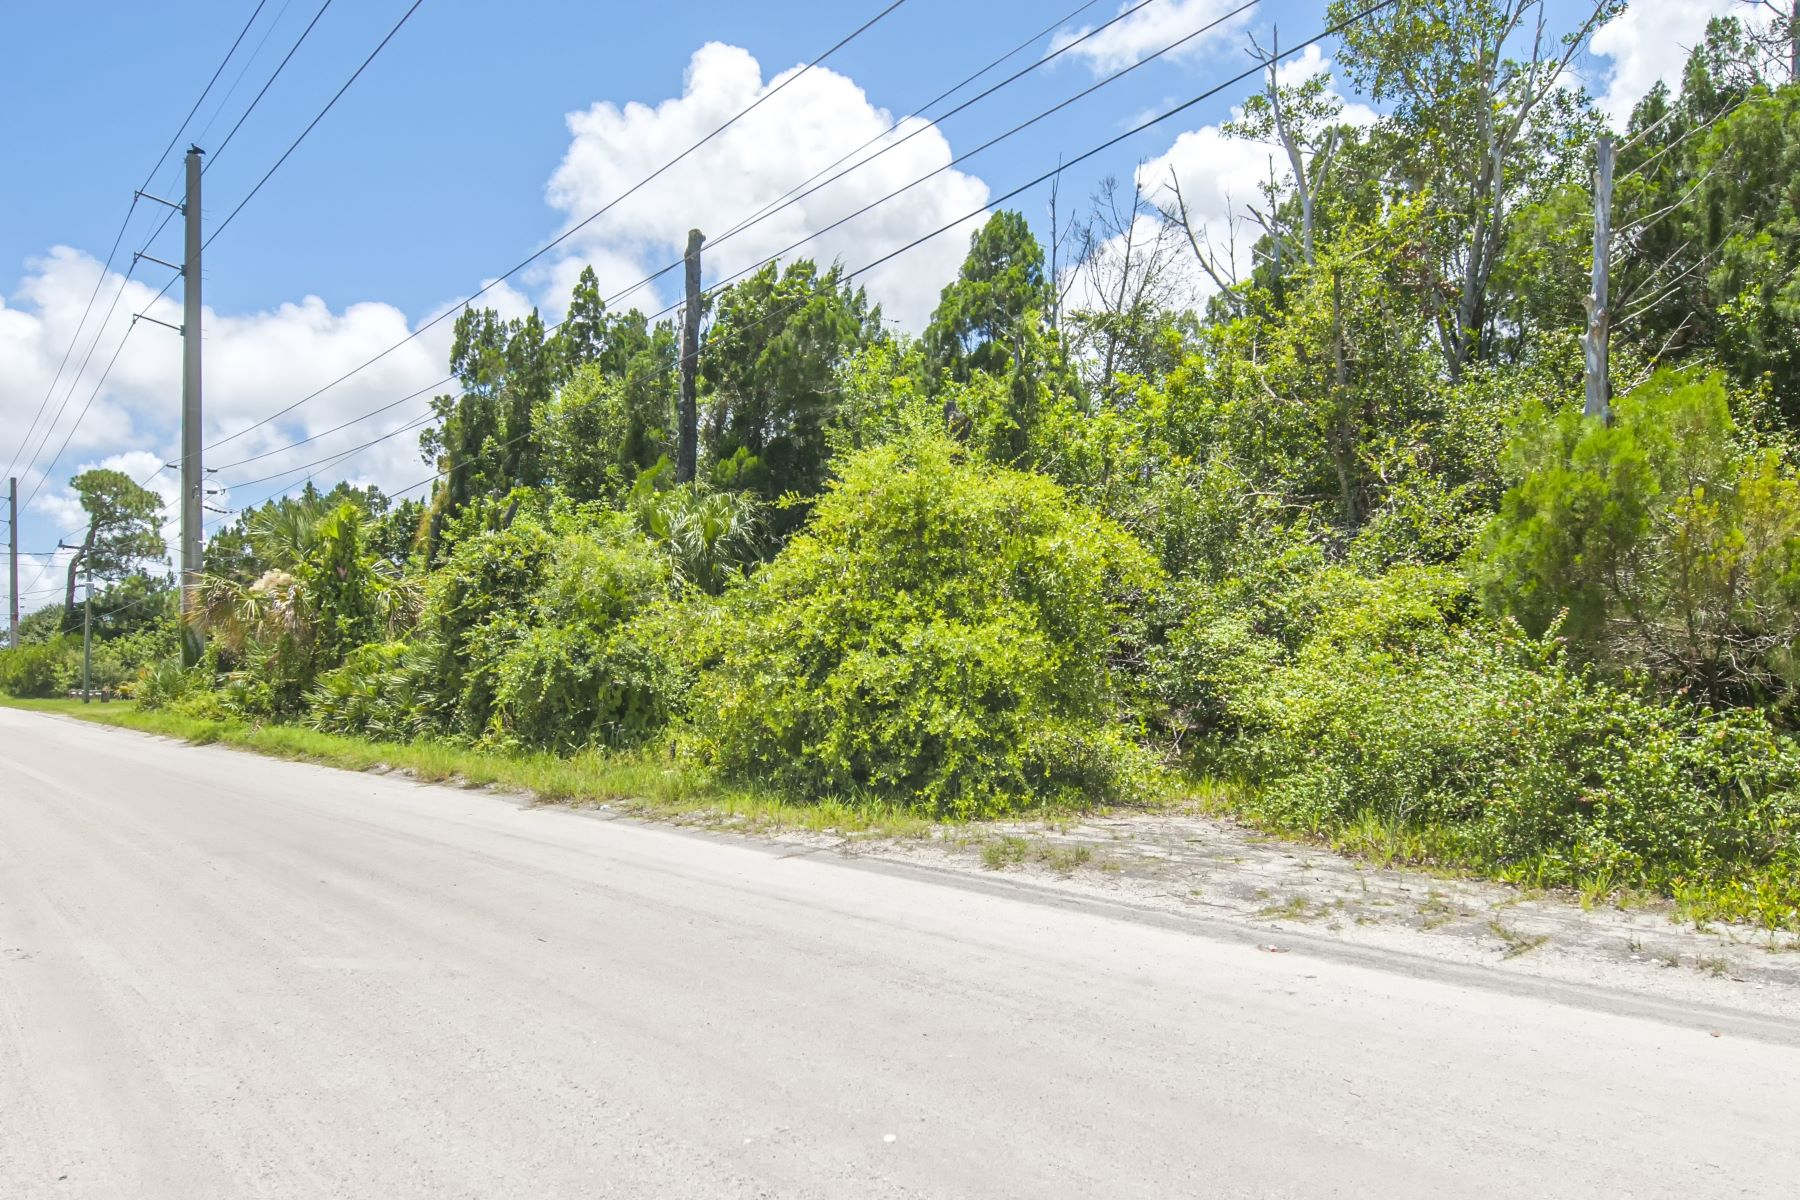 12870 80th Lot 4 Court, Sebastian, FL 12870 80th Lot 4 Court Sebastian, Florida 32958 Hoa Kỳ